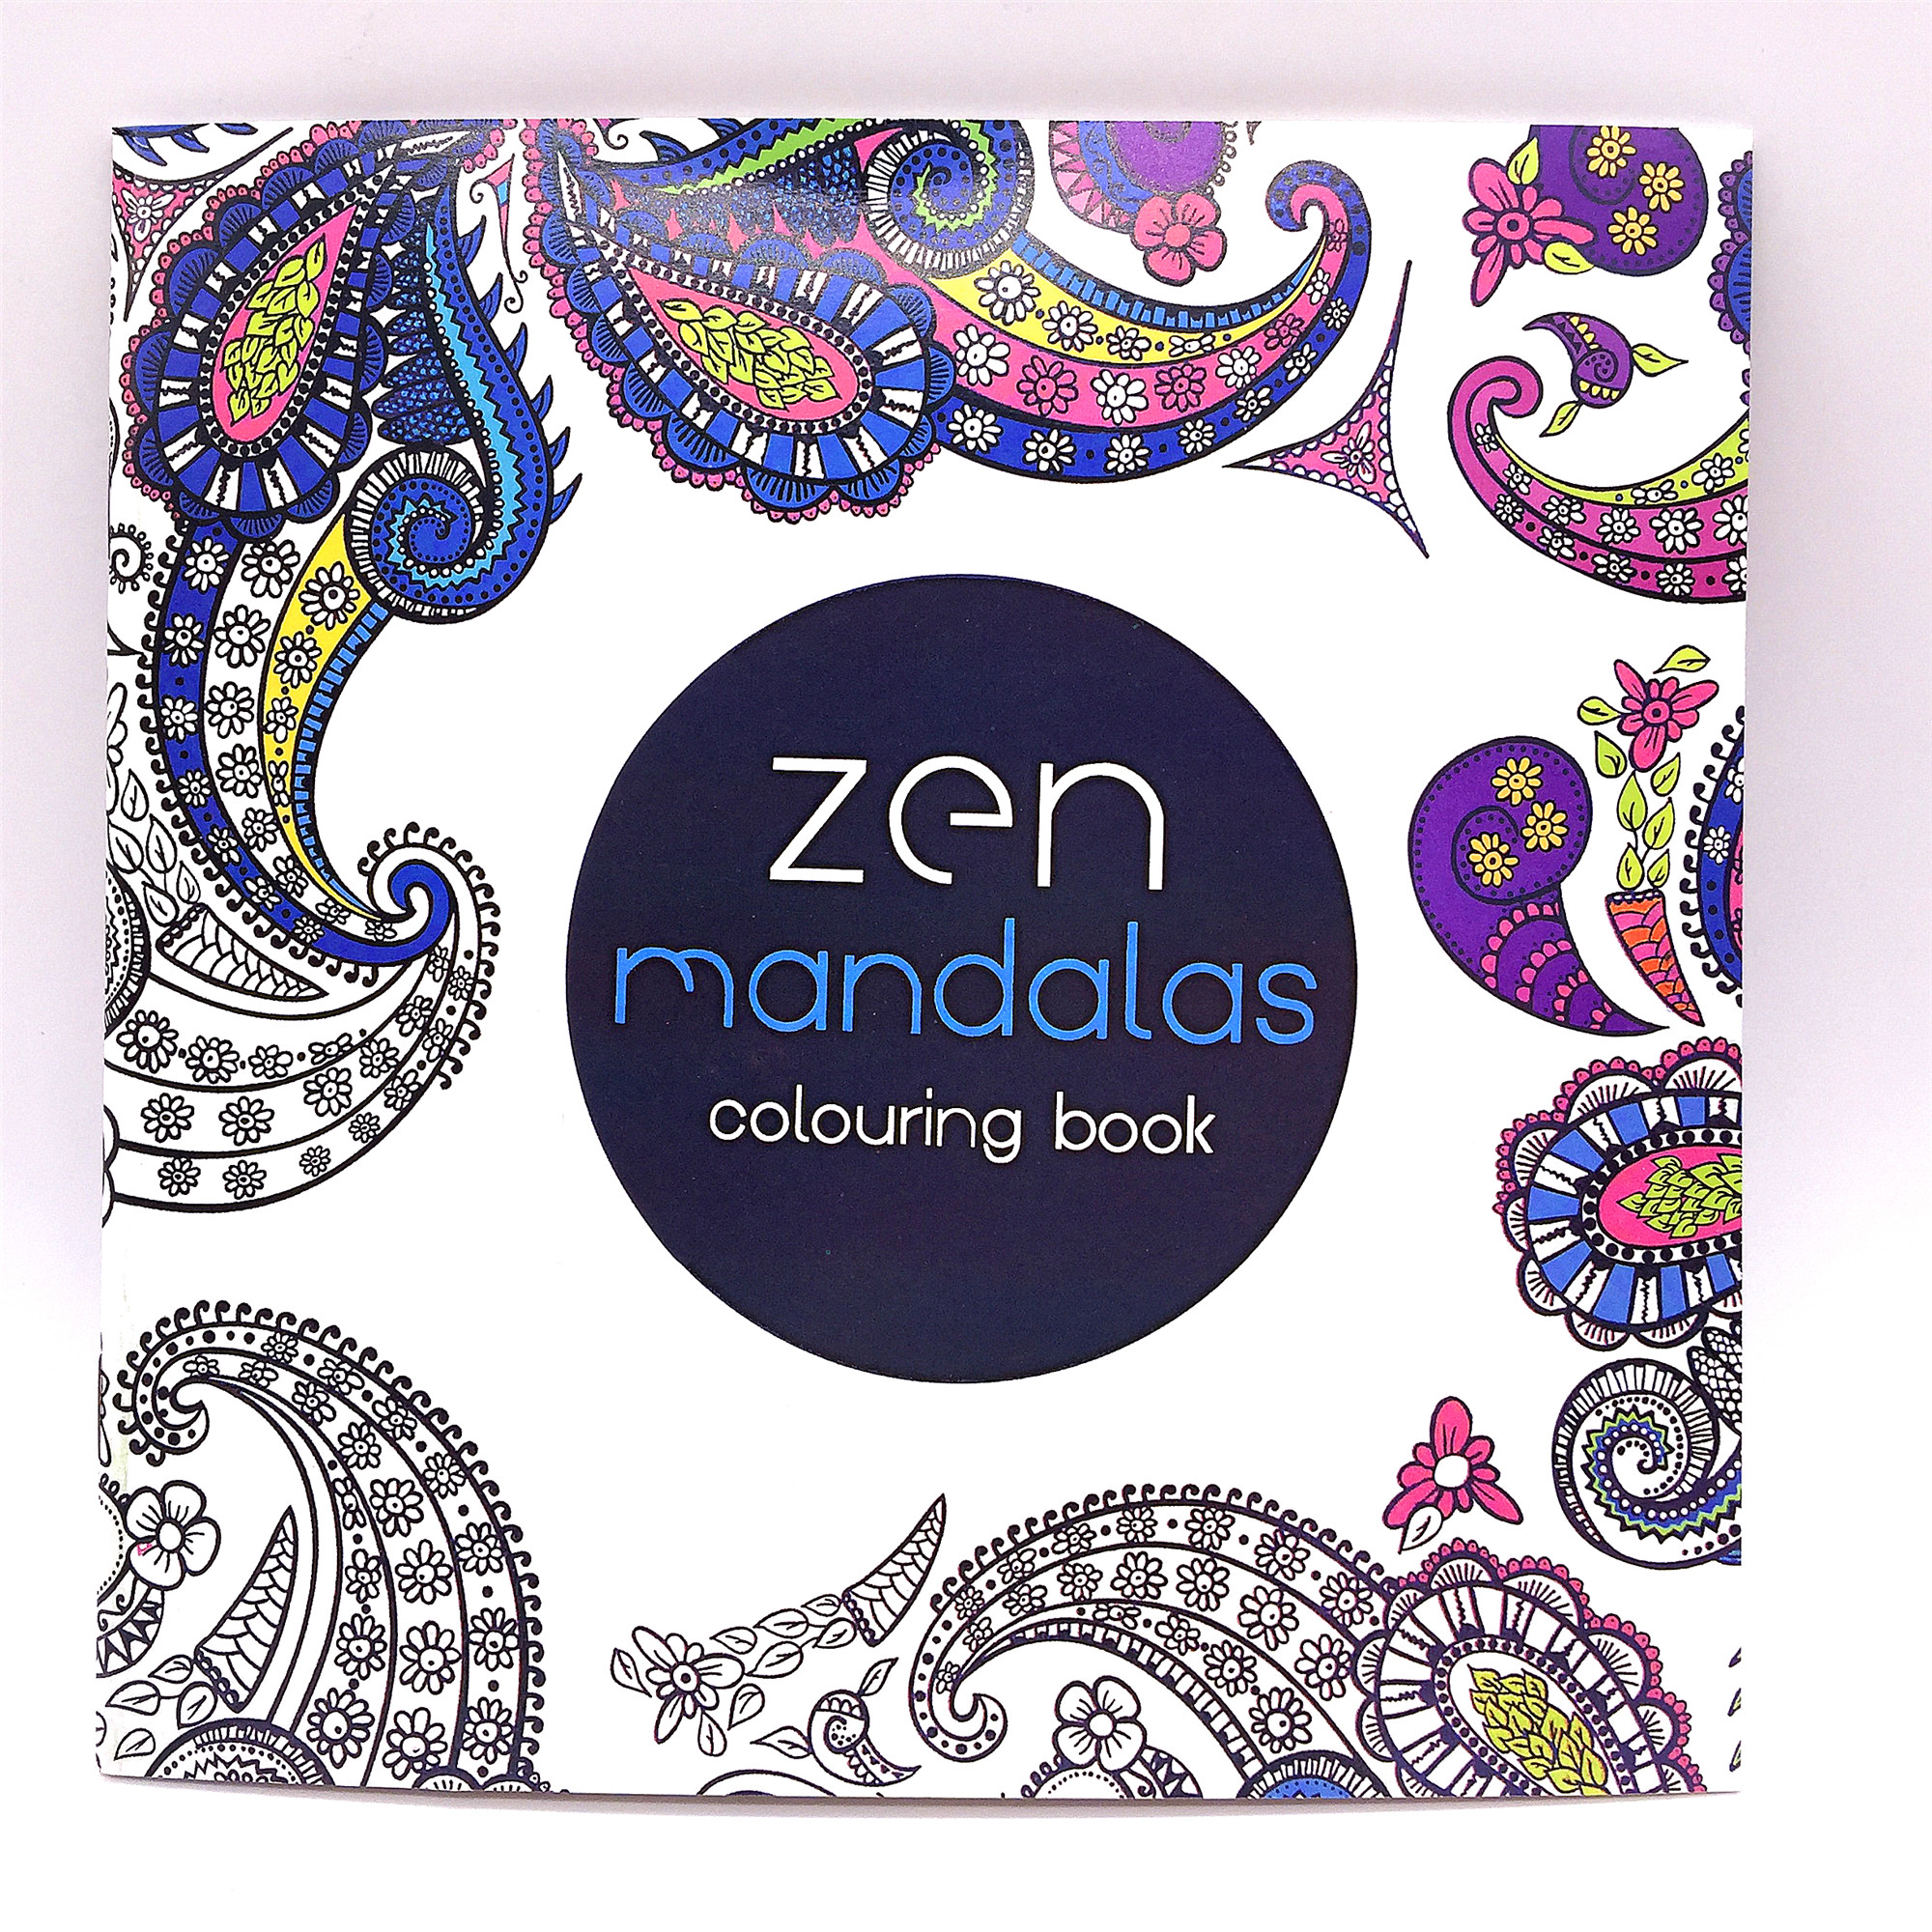 1 Pcs 12 Page 24 Figure Adult Child Graffiti Book Zen Manddlds Colouring Book For Adult Children To Spend Time To Relieve Stress(China (Mainland))